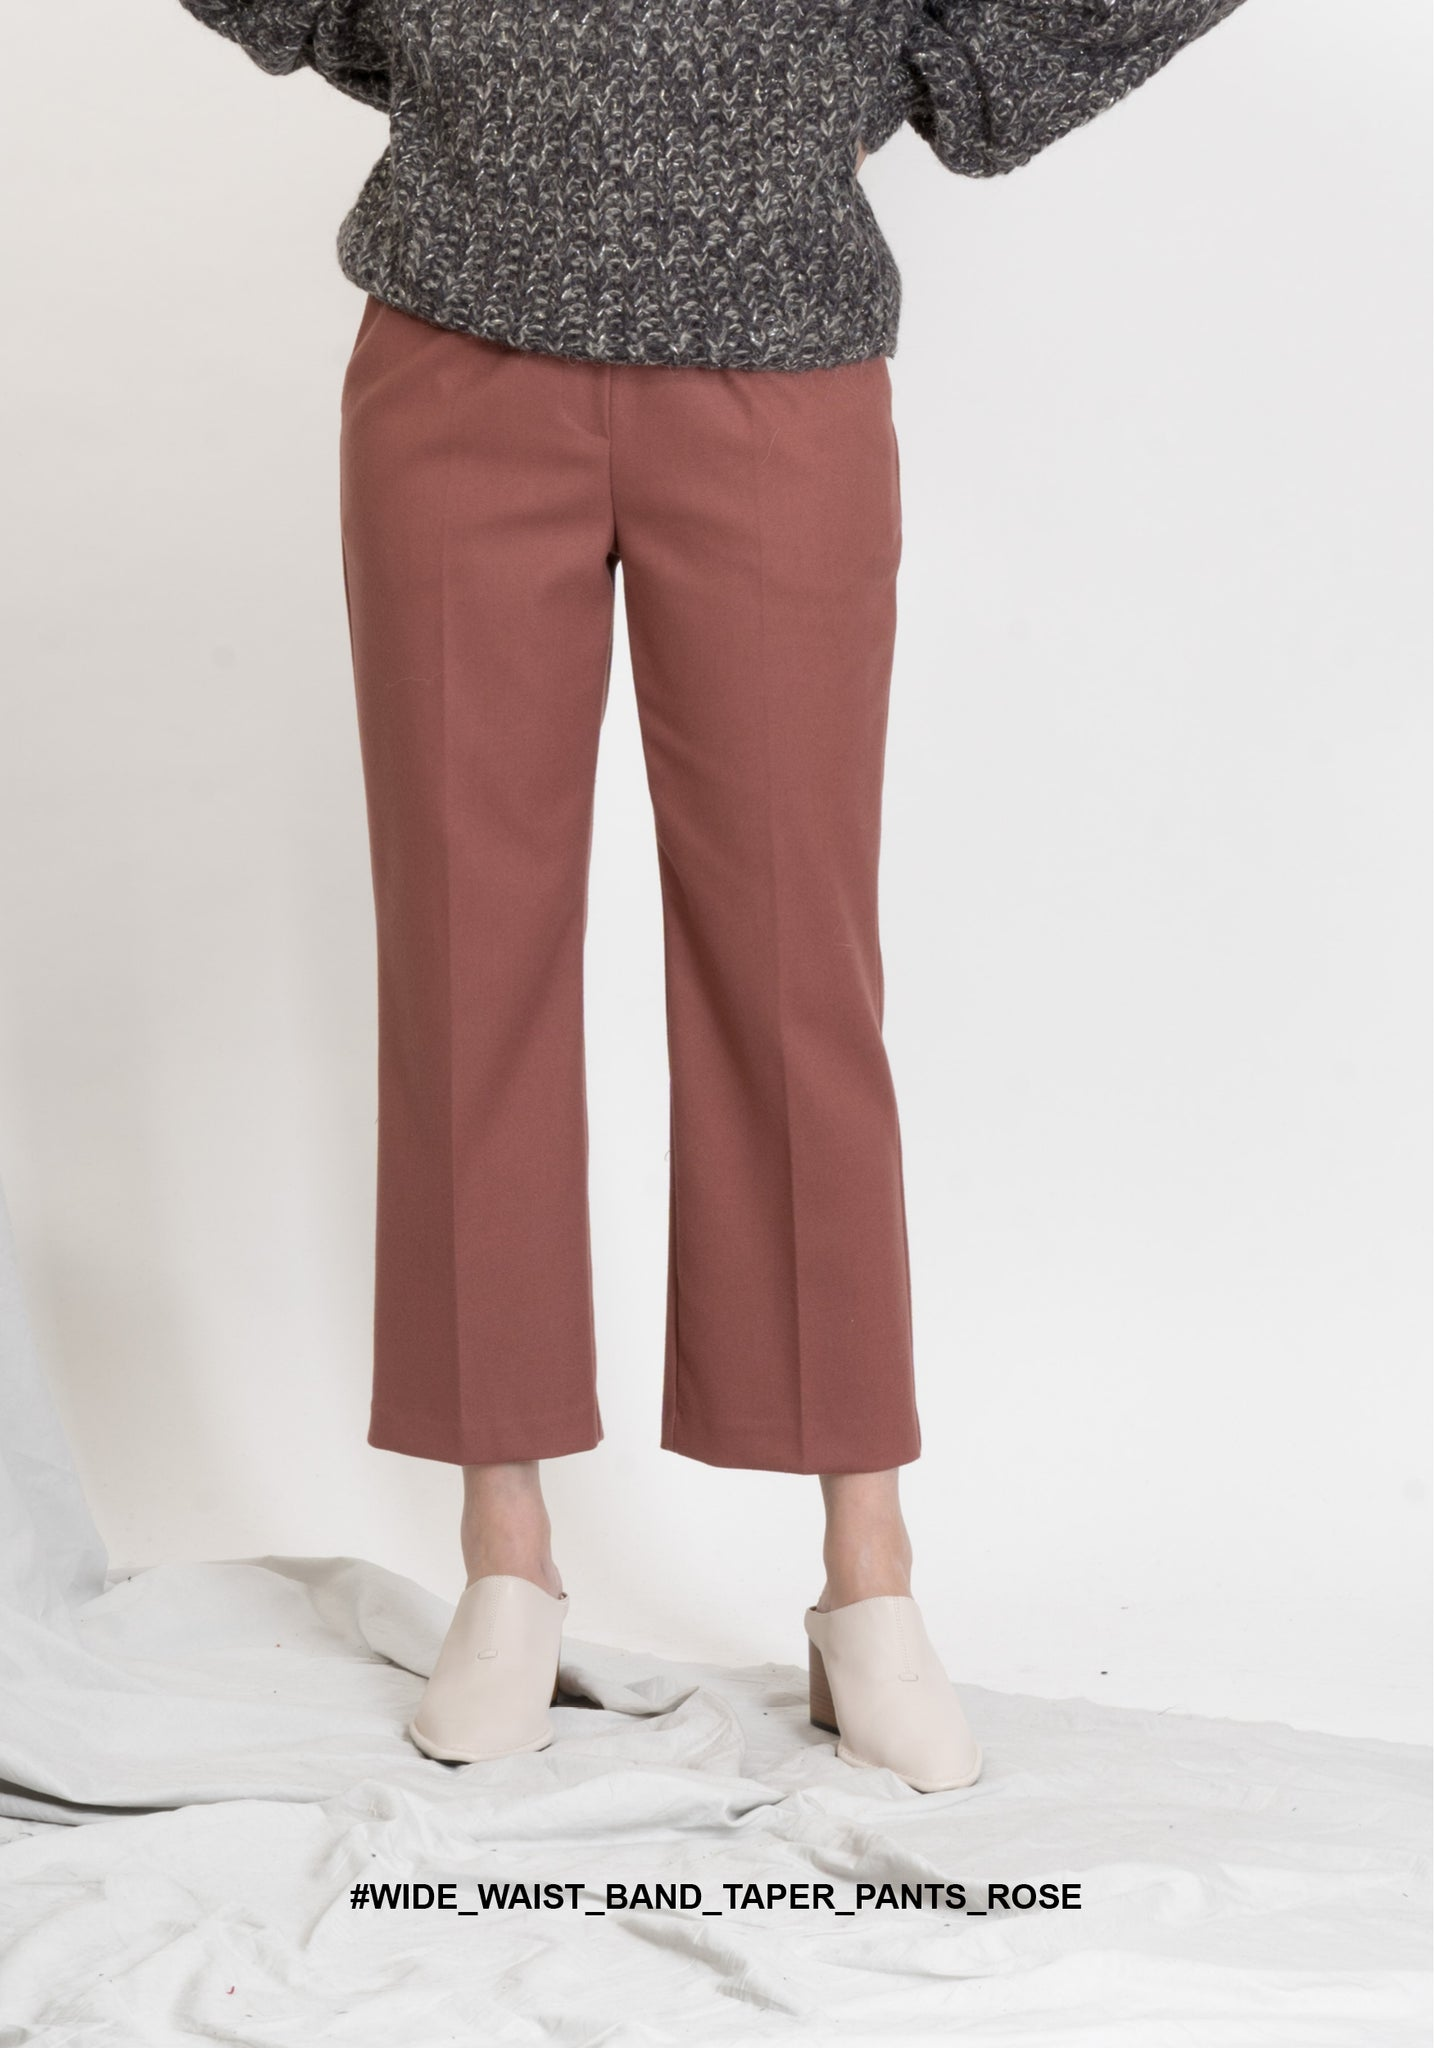 Wide Waist Band Taper Pants Rose - whoami